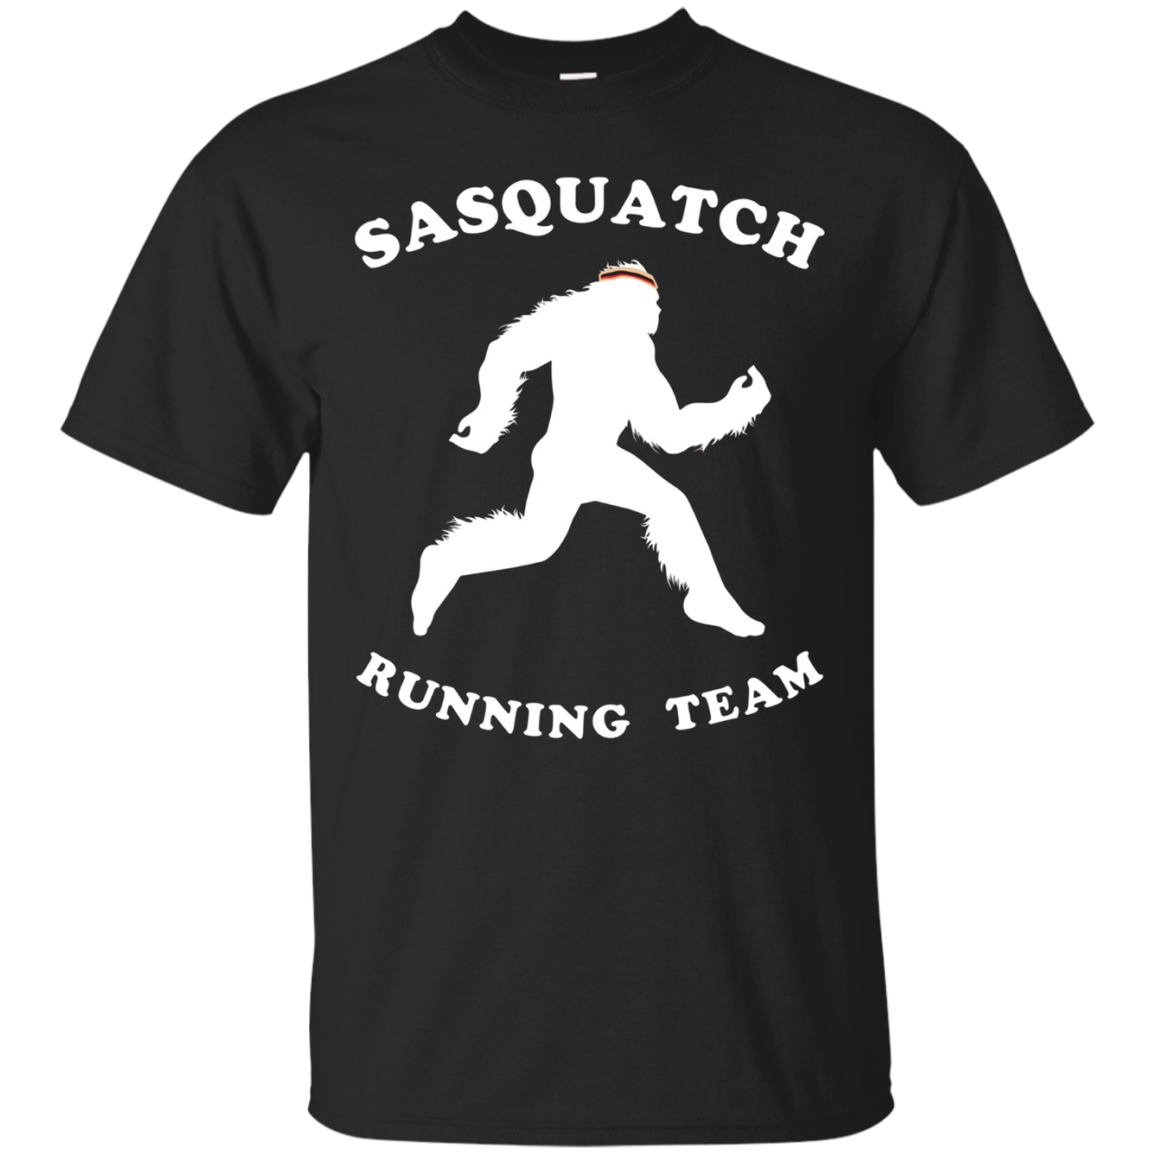 Sasquatch Running Team Shirt, Ape Man Marathon Runner Tee